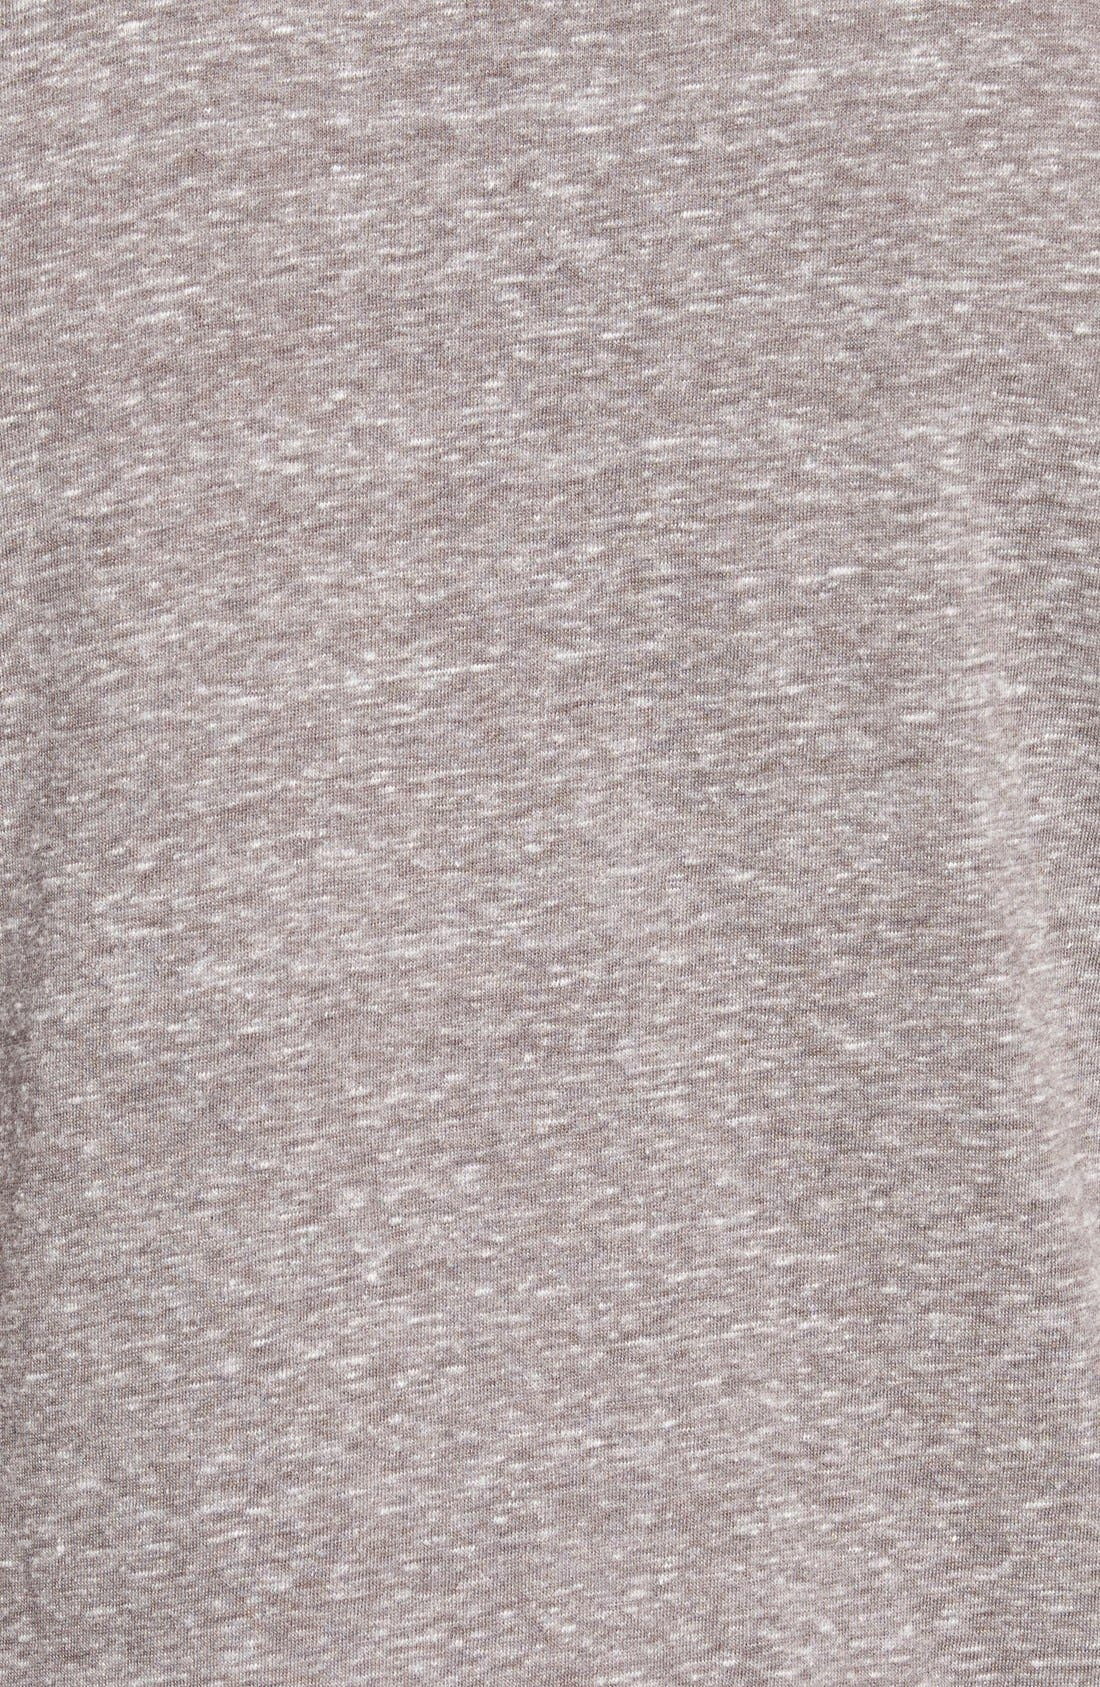 'Los Angeles Dodgers - No Hitter' Tailored Fit Graphic T-Shirt,                             Alternate thumbnail 3, color,                             050